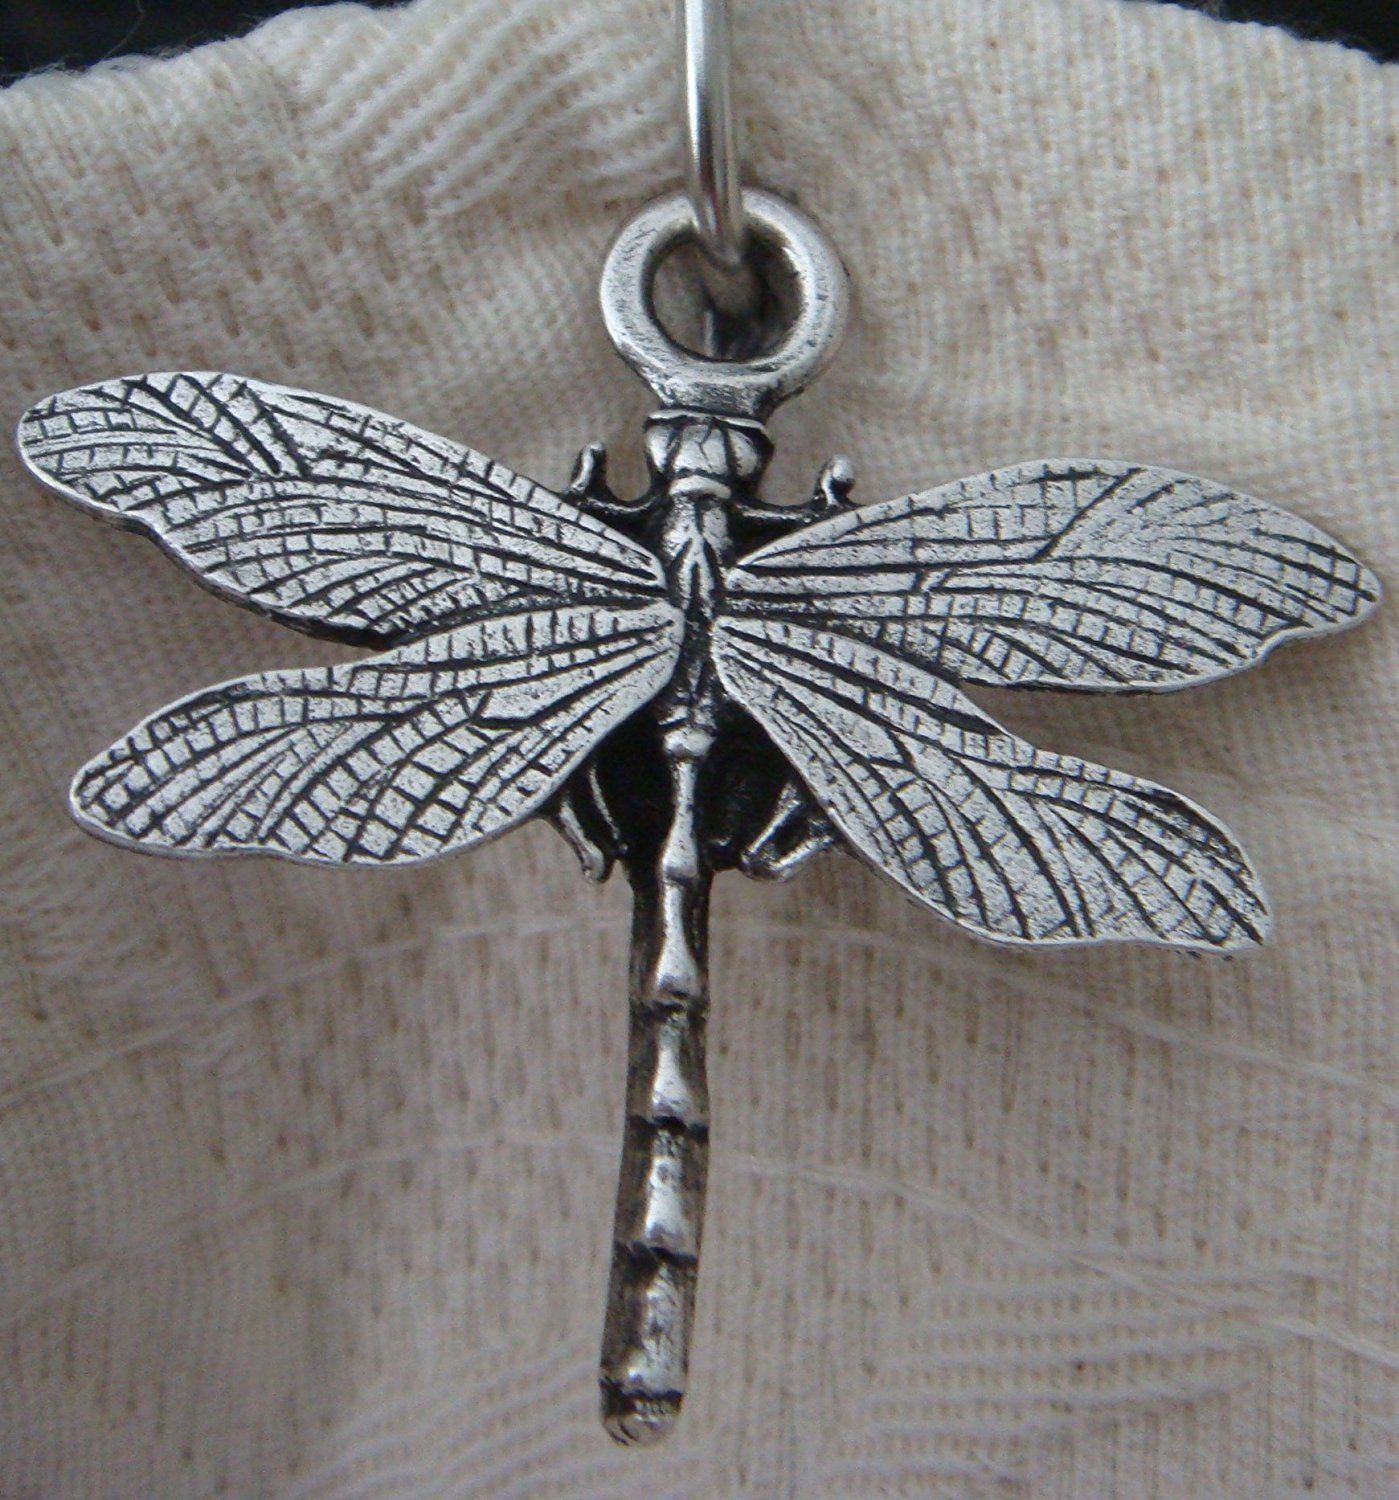 12 Dragonfly Shower Hook Add-on - Antique Silver Electroplate Finish - ** Free roller bead chrome Shower Curtain Hooks with Purchase ...